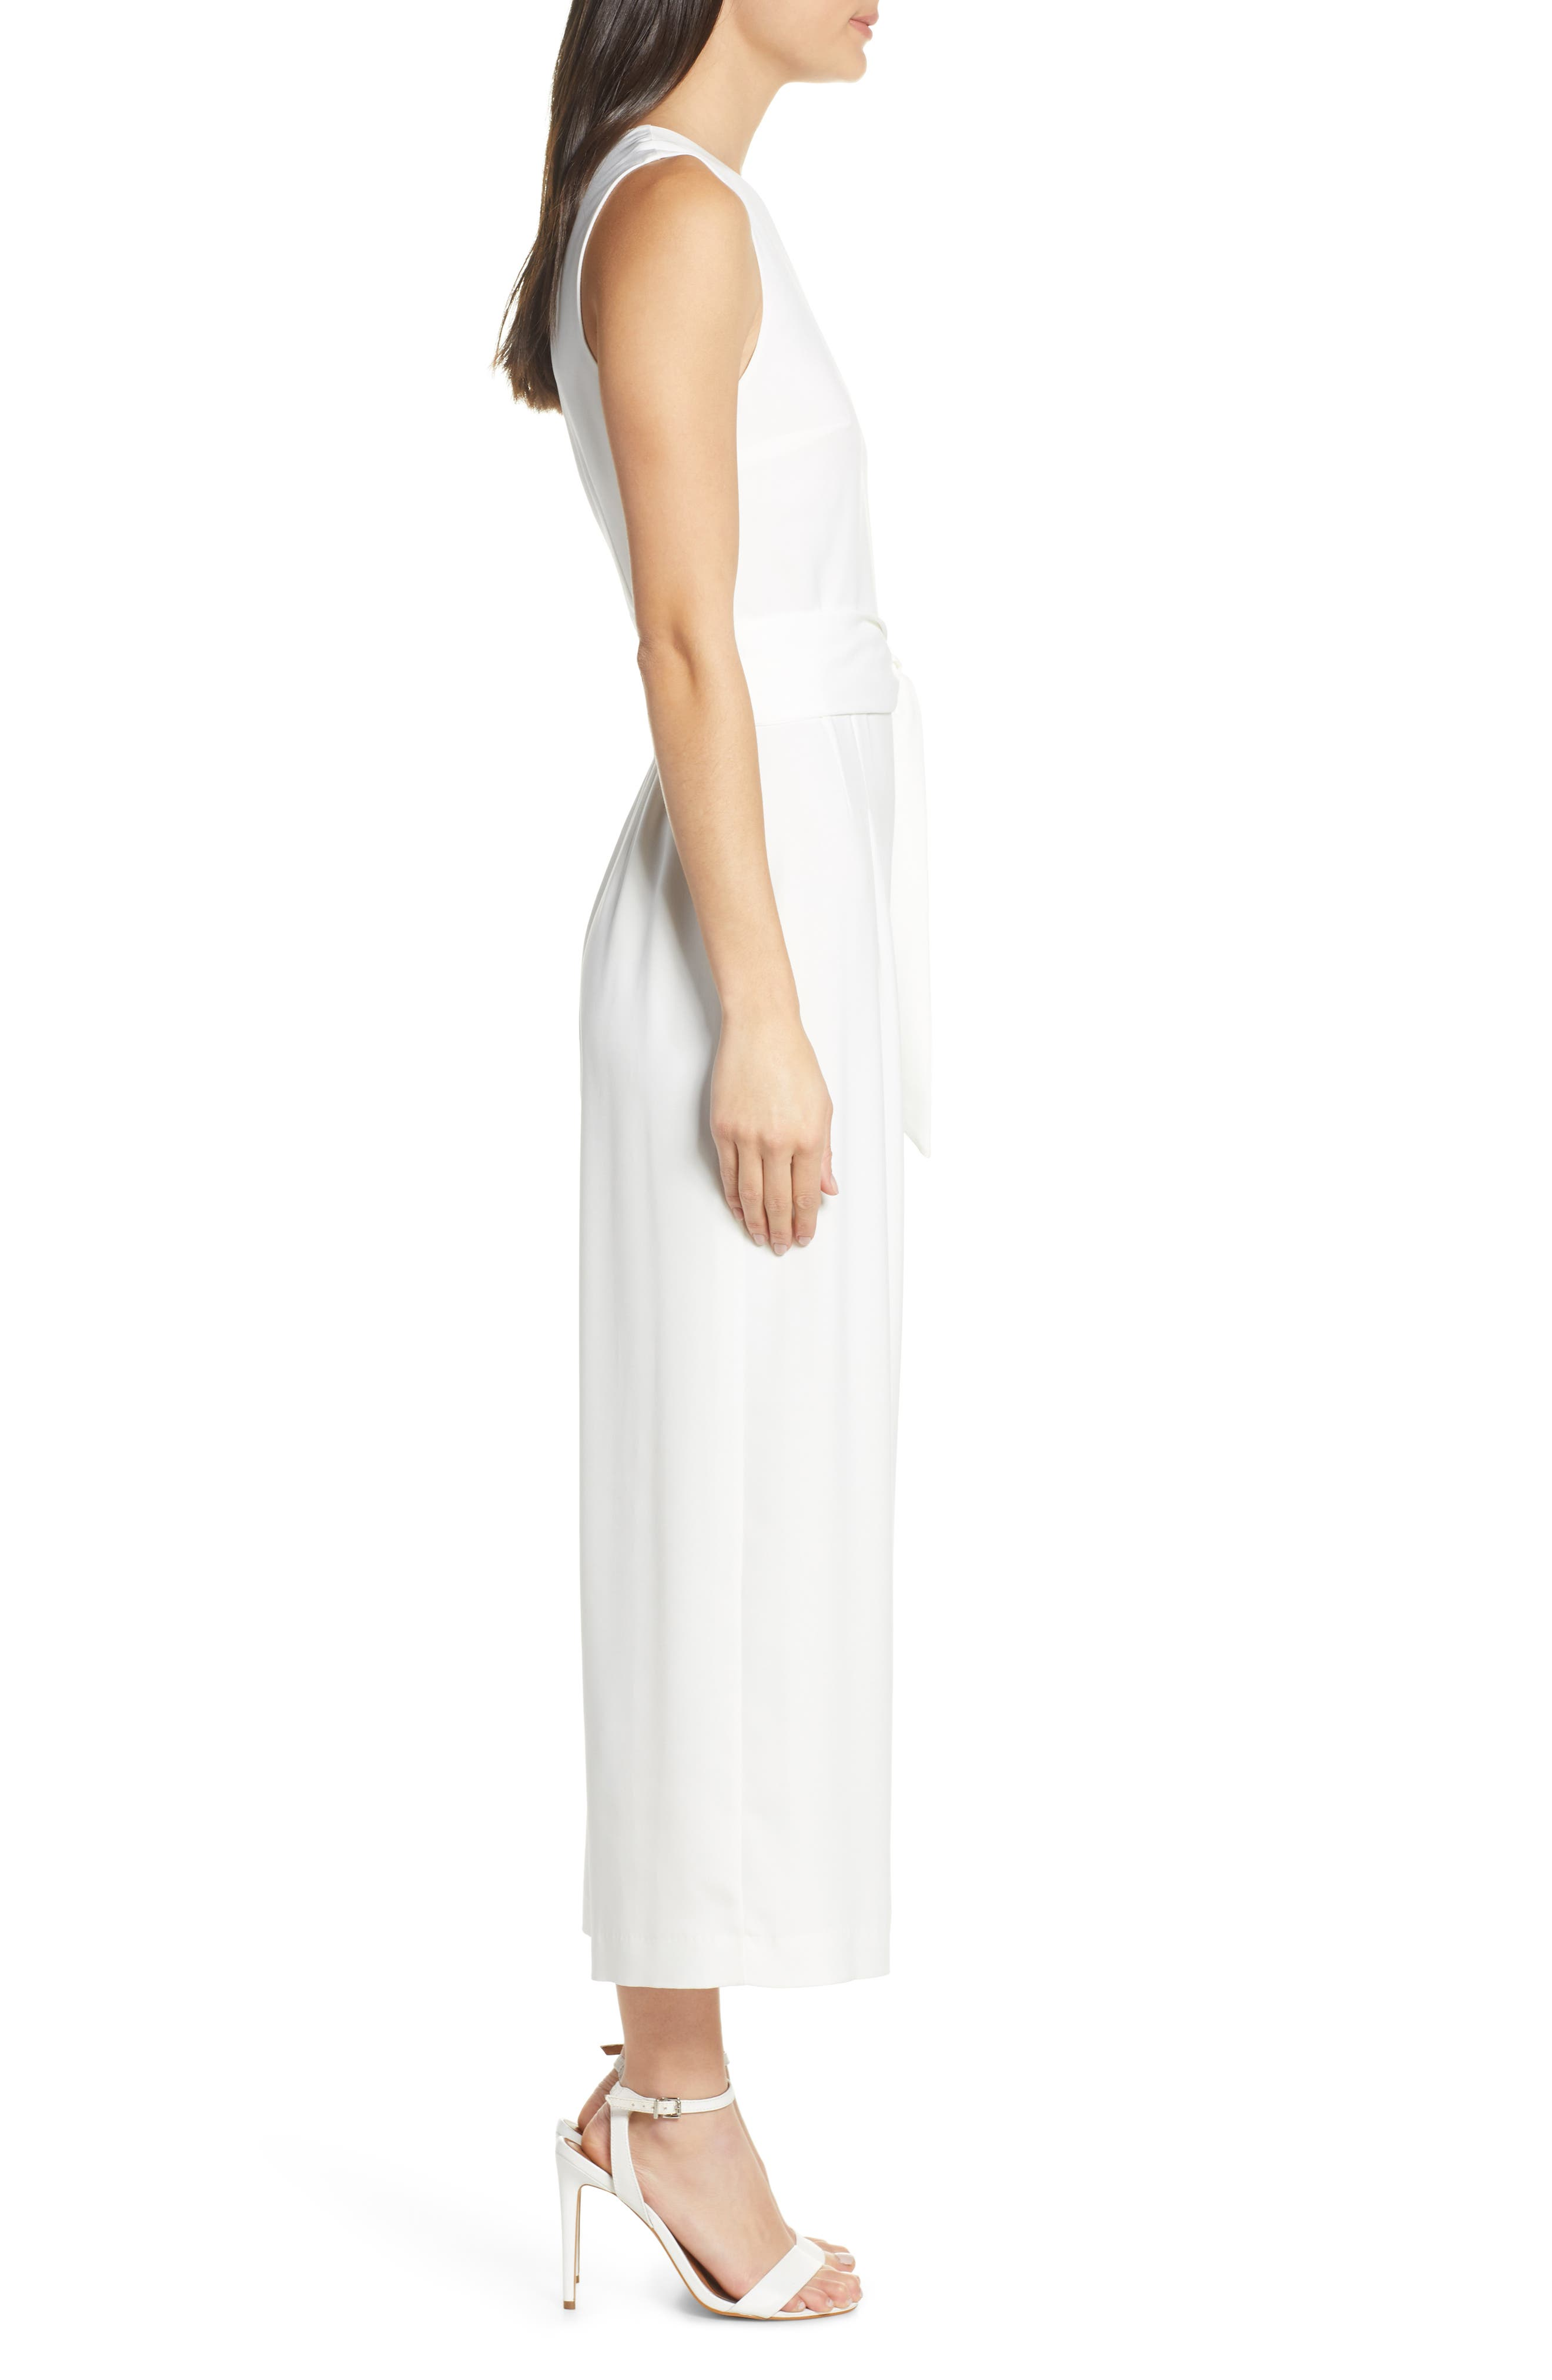 CHARLES HENRY, Sleeveless Culotte Jumpsuit, Alternate thumbnail 4, color, IVORY